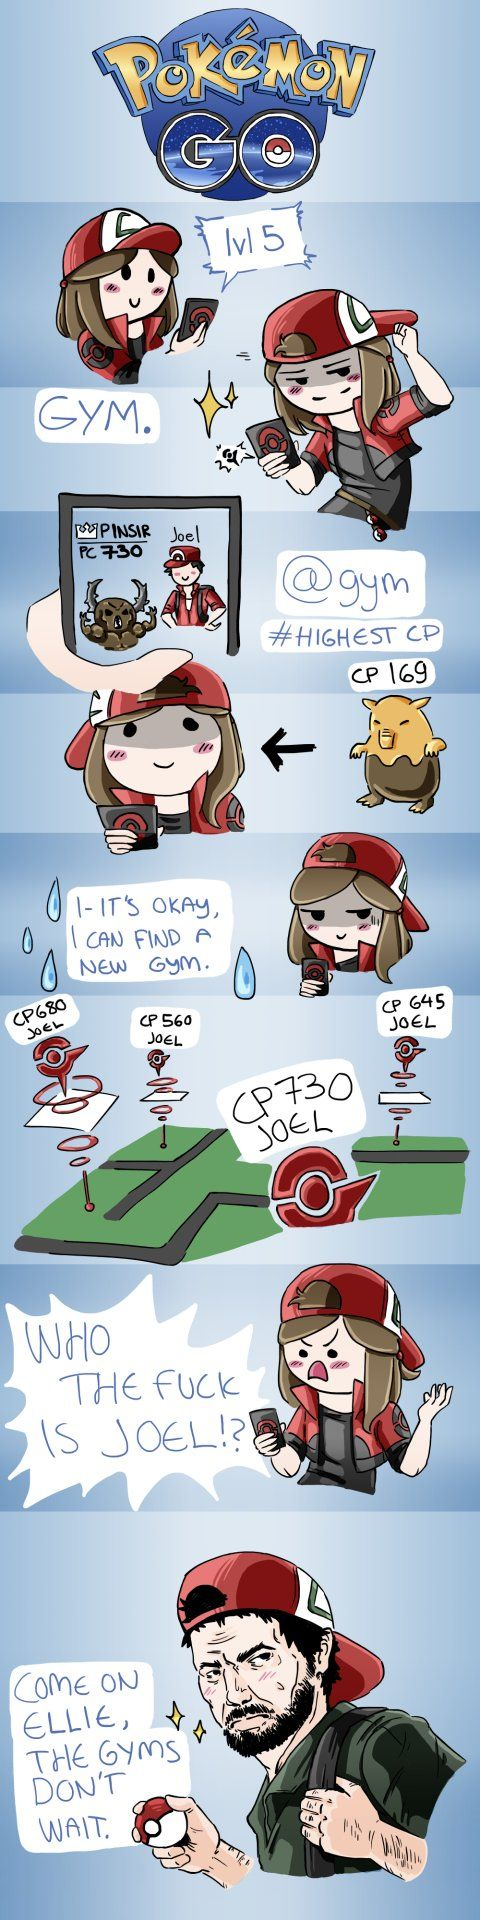 Break Boredom by this Comic:   PokemonGO - Joel and Ellie   Click here to View the Comic.   Seriously this guy is the champion in 90% of out city's gyms. THIS GUY MUST TRAVEL WAY TOO MUCH TO EVEN GET TO THEM ALL.  AND LOOK AT THAT CP 730 PINSIR. IT'S BUFF AS F***. I'll get you one day Joel, one day. I'm closing in on you.  Now excuse me I have a Joel to win.